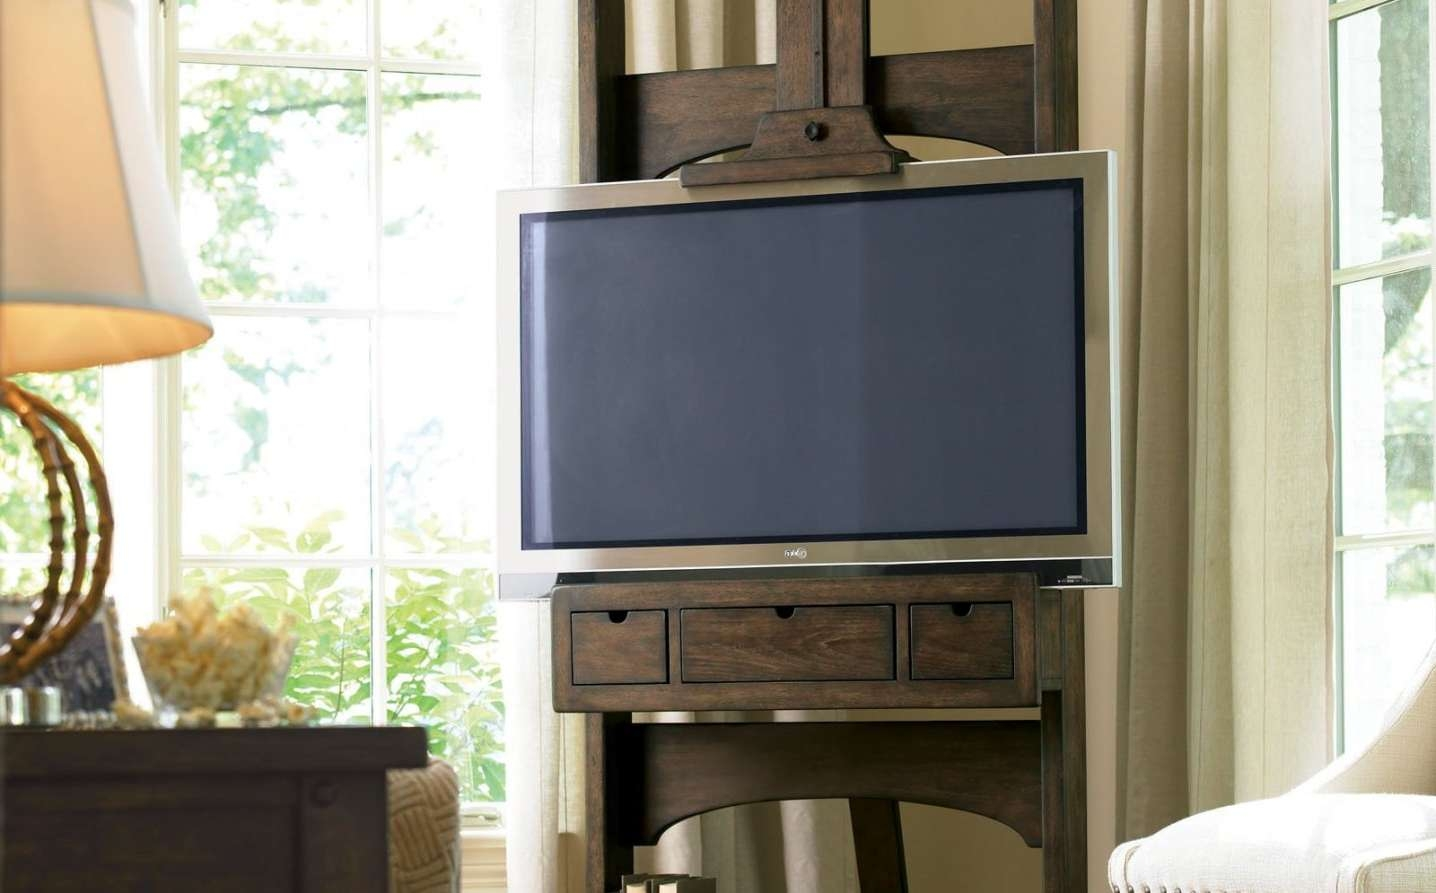 Tv : Exotic Easel Tv Stands For Flat Screens Gripping Easel Tv Regarding Easel Tv Stands For Flat Screens (View 8 of 15)